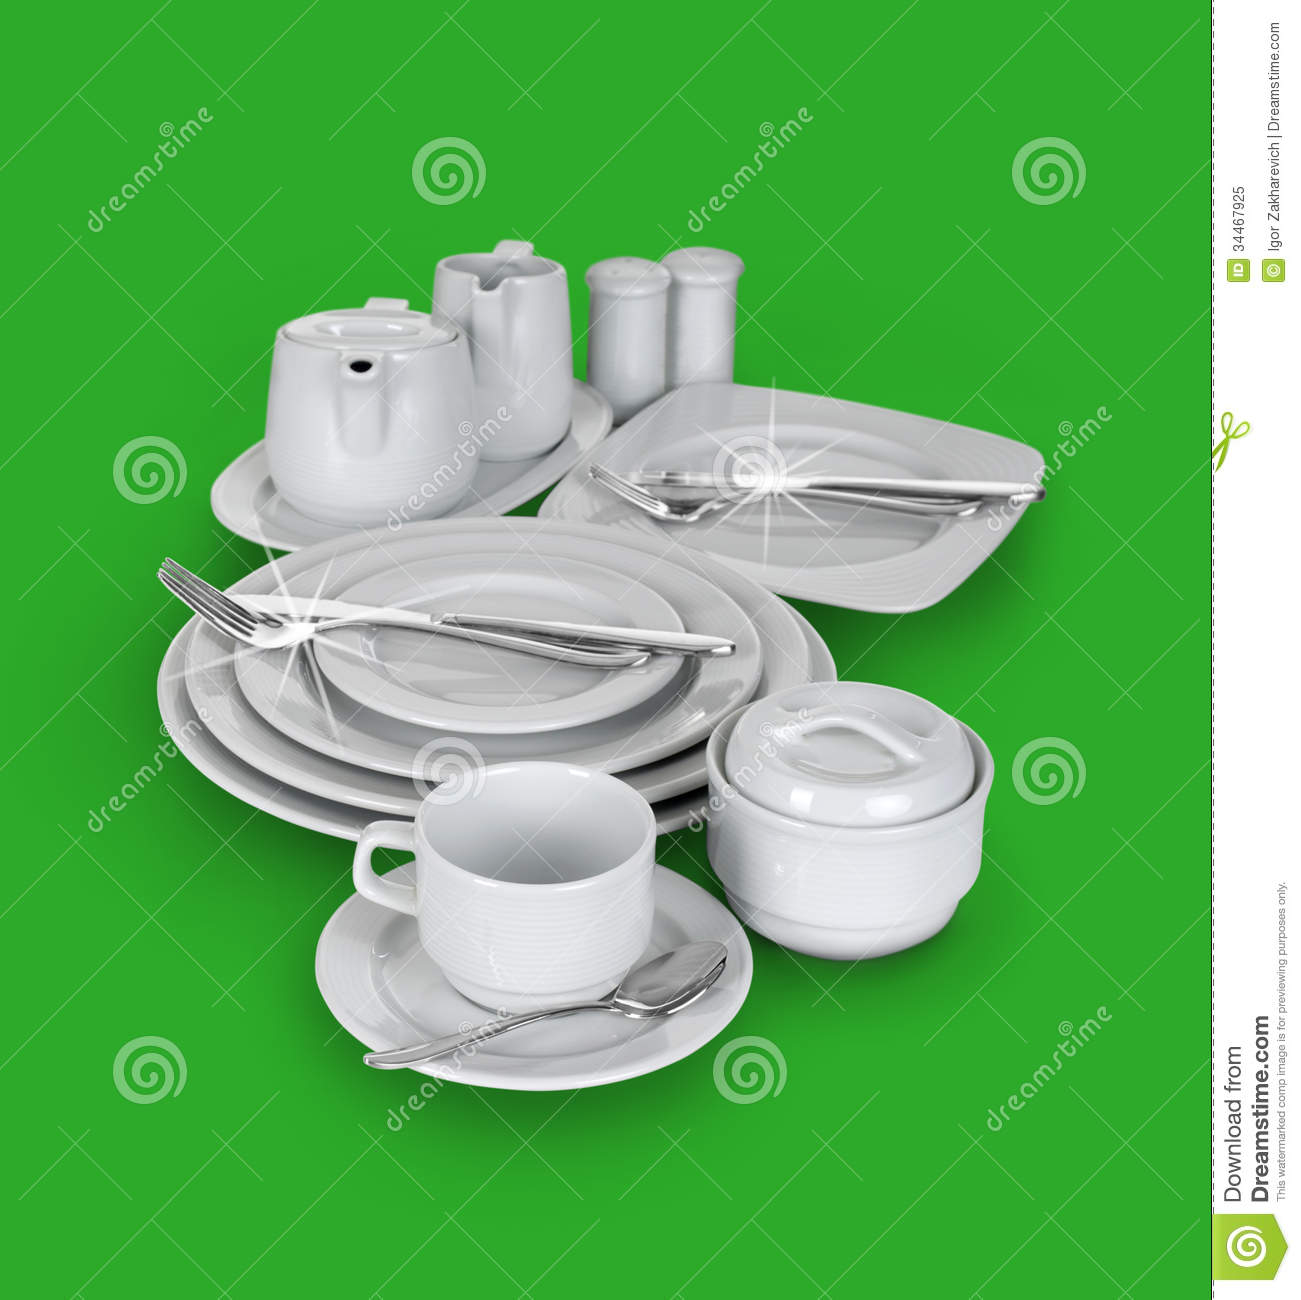 Kitchen Set Of Cups Plates And Glasses Stock Image